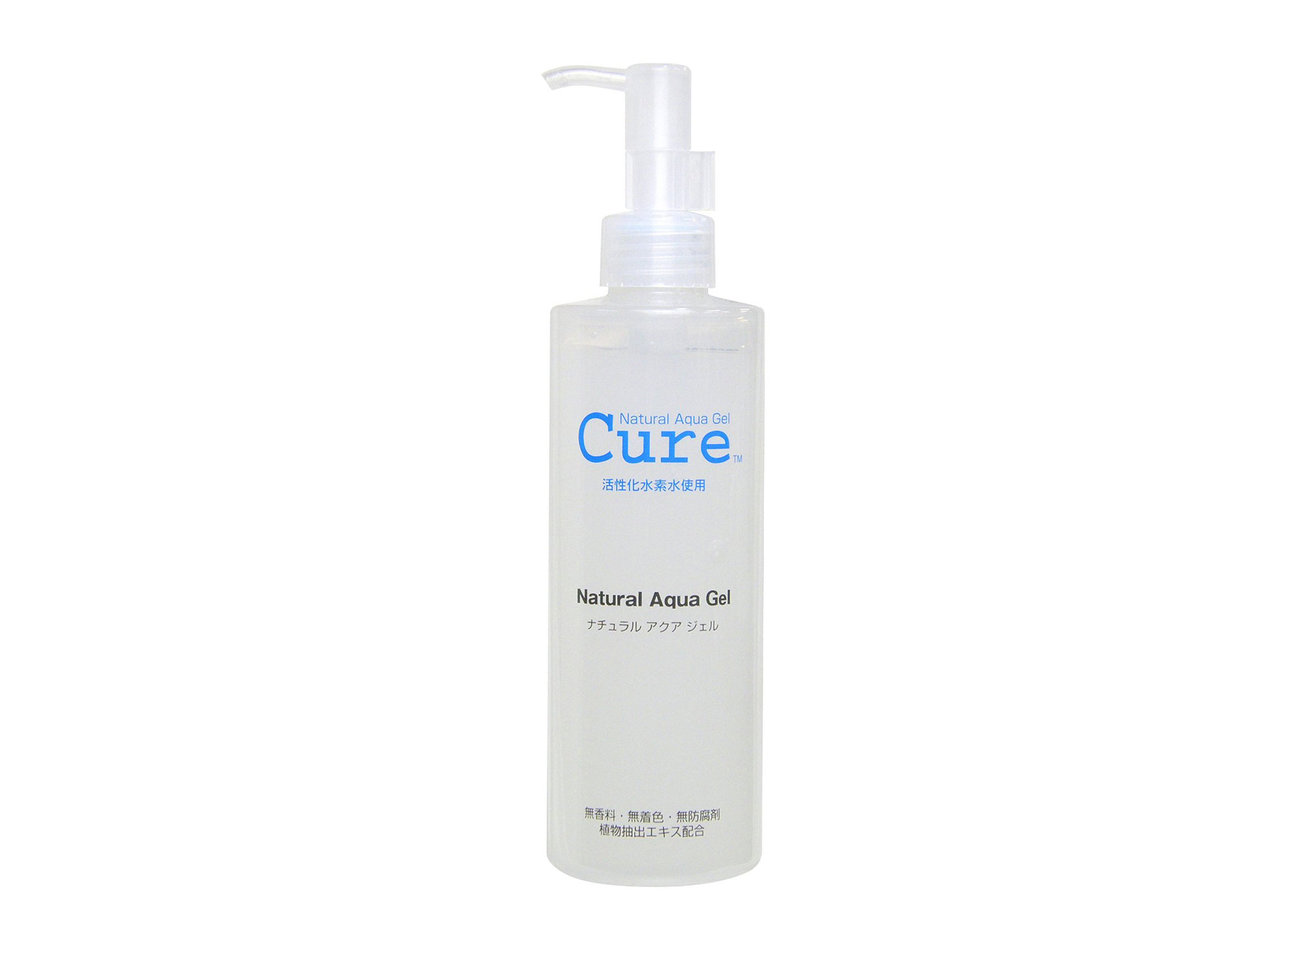 Cure-Natural-Aqua-Gel-250ml-PROD0816.jpg